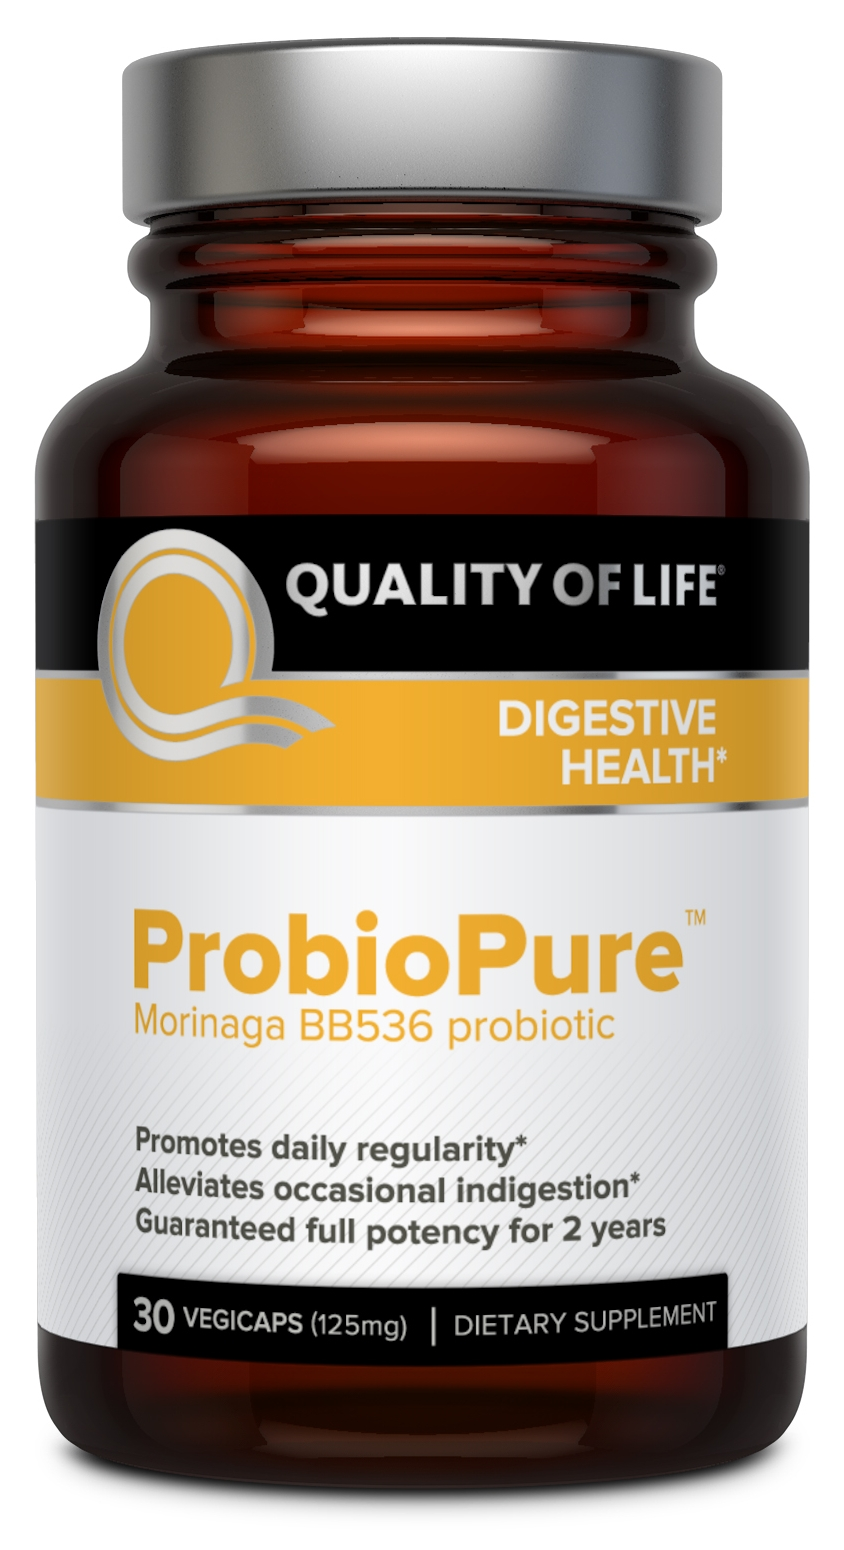 ProbioPure Morinaga BB536 Probiotic 125 mg 30 Vegicaps by Quality of Life Labs